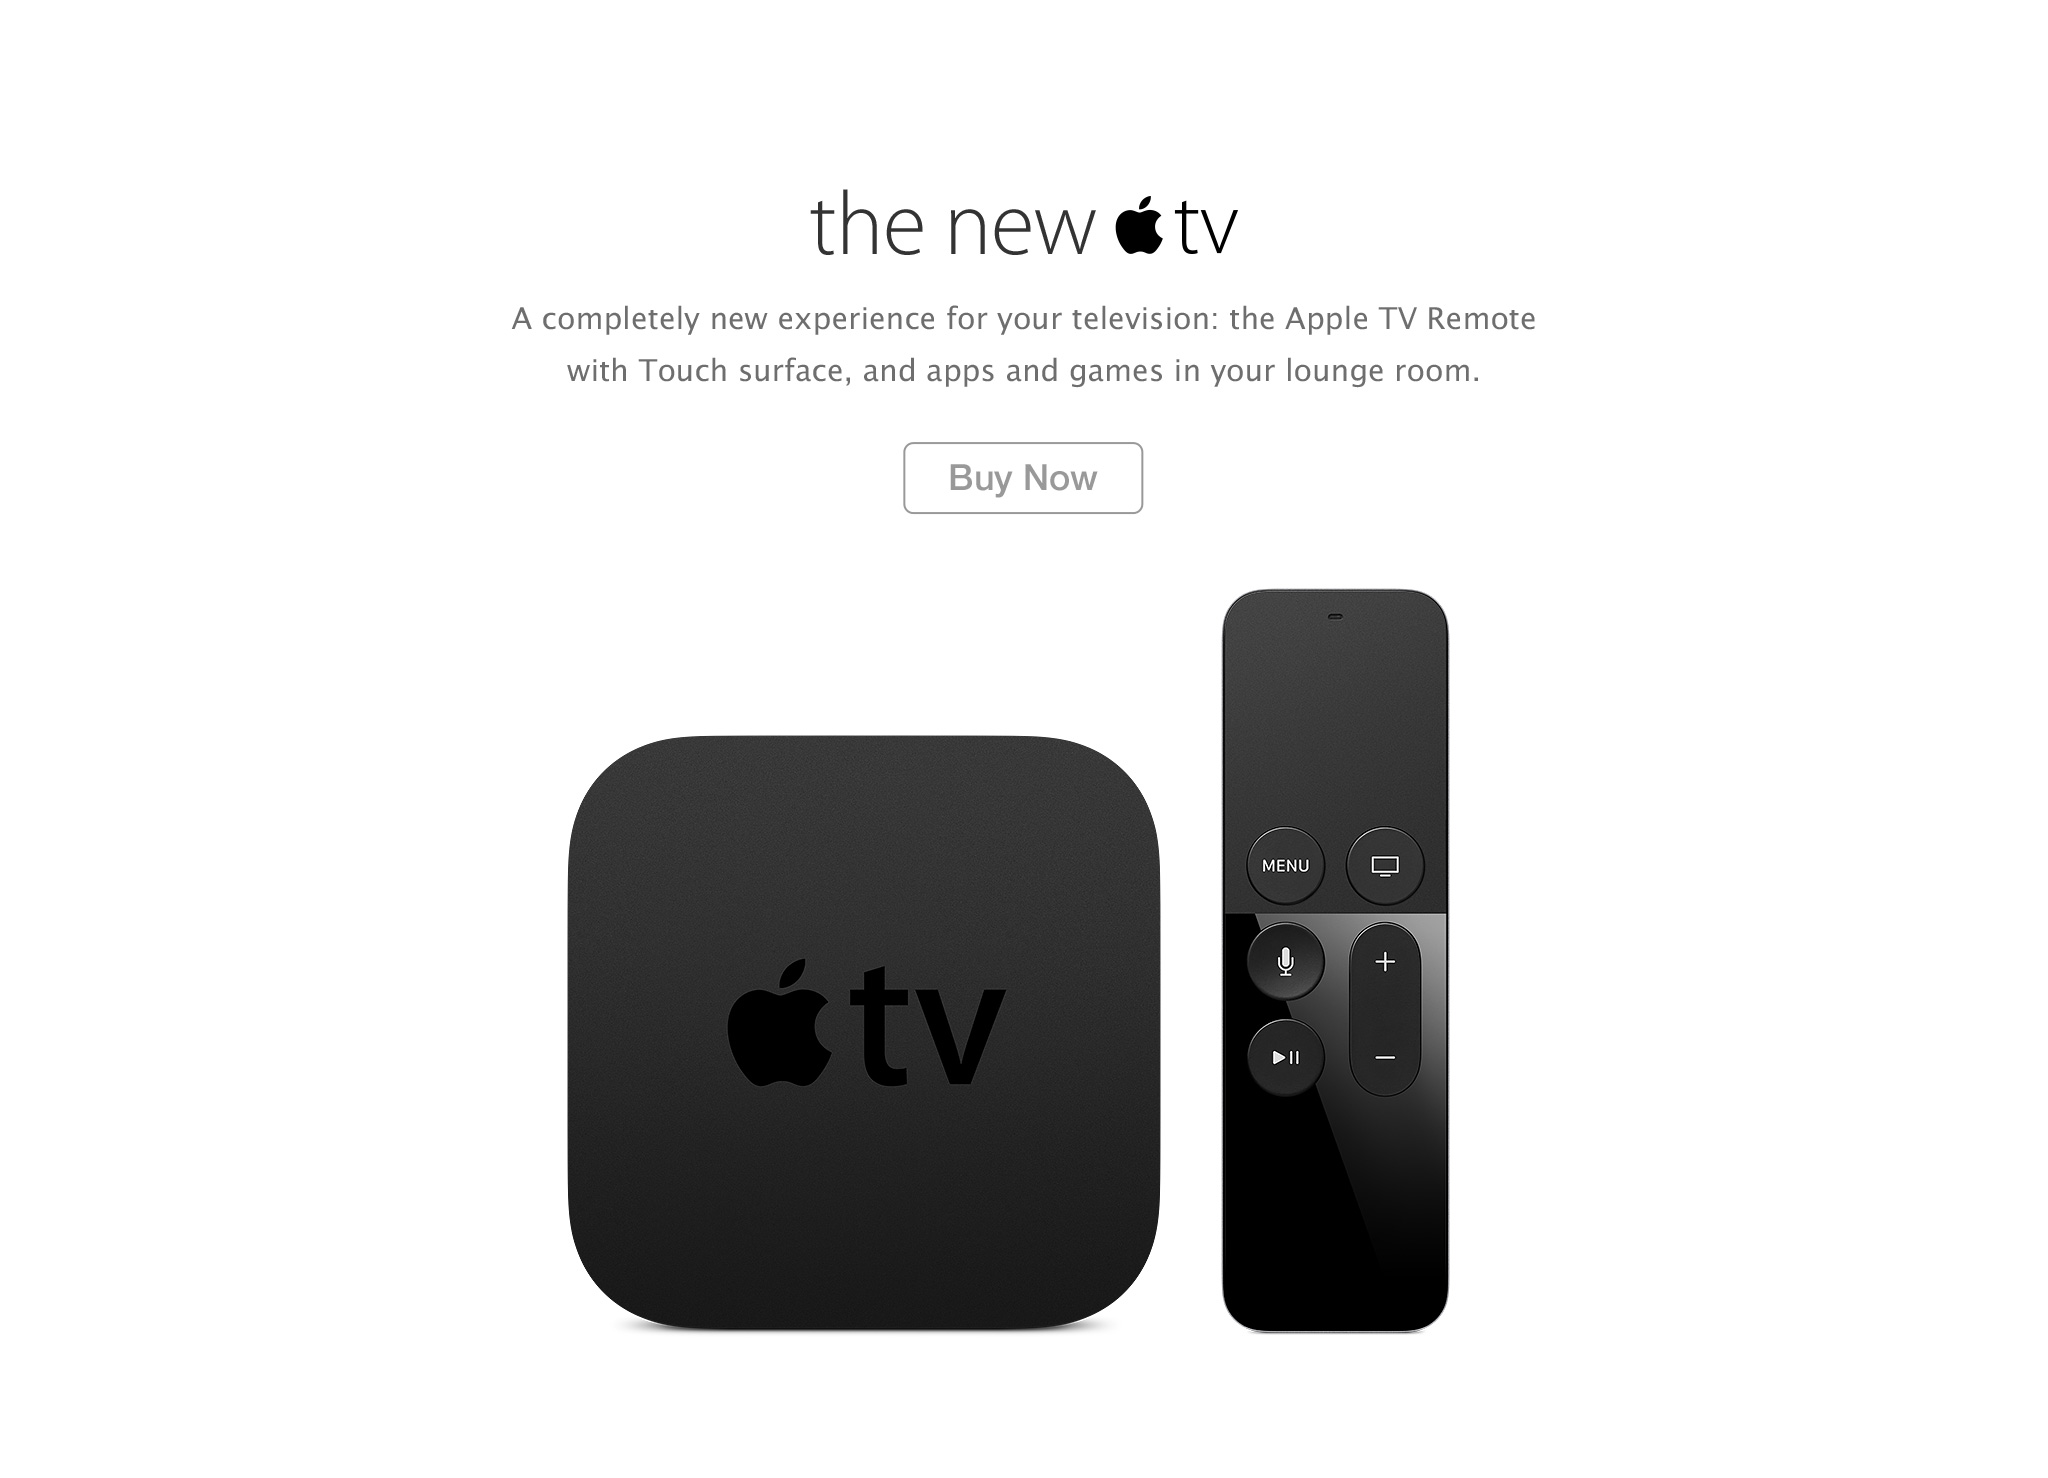 The New Apple TV buy now